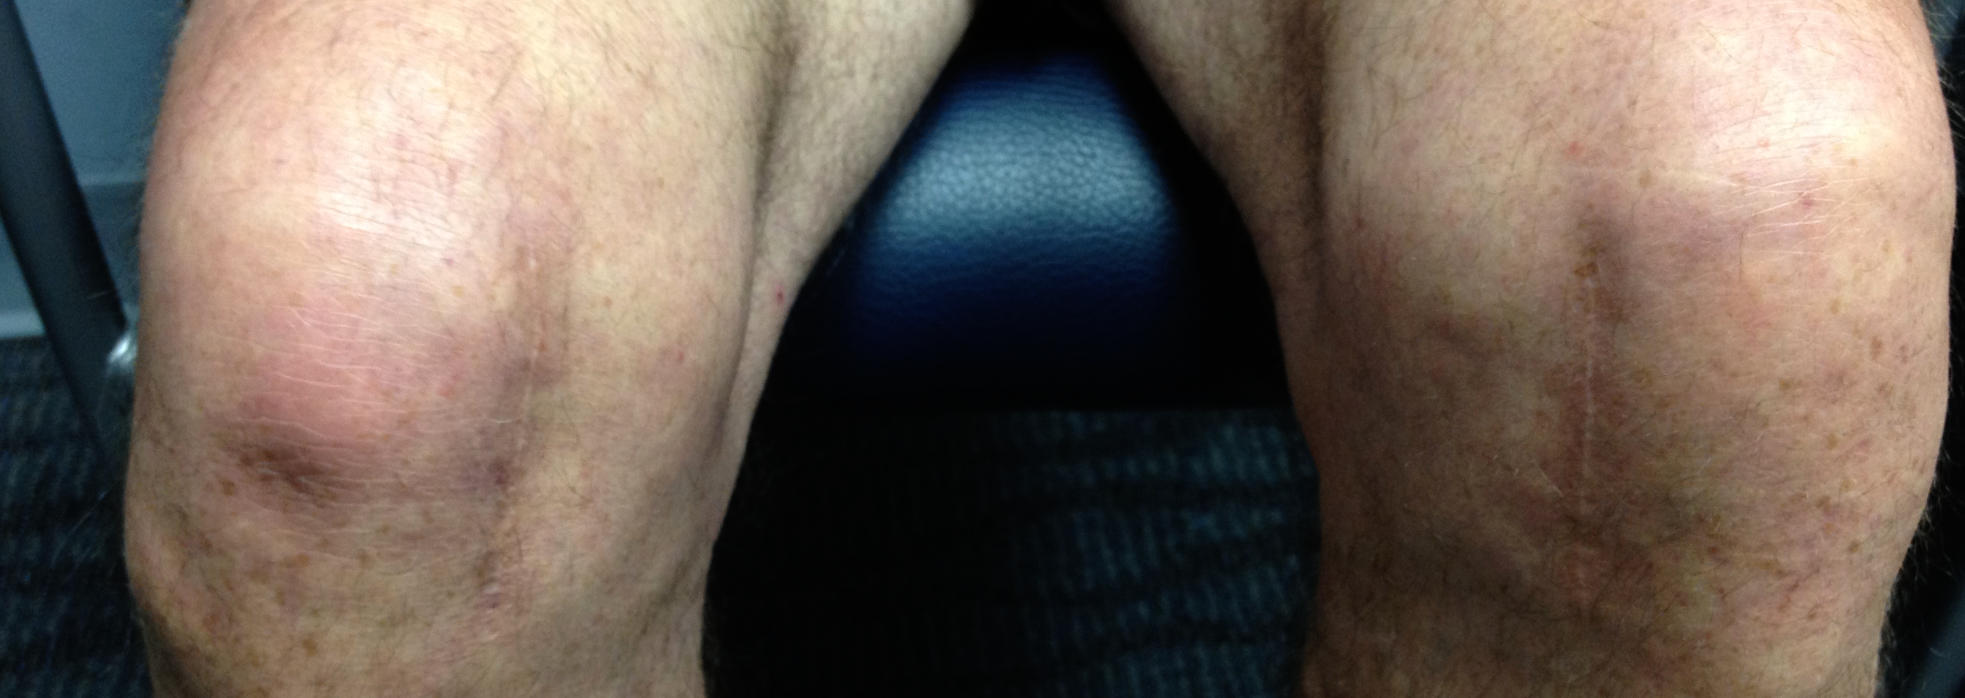 Healed knees of a patient after robotic knee surgery